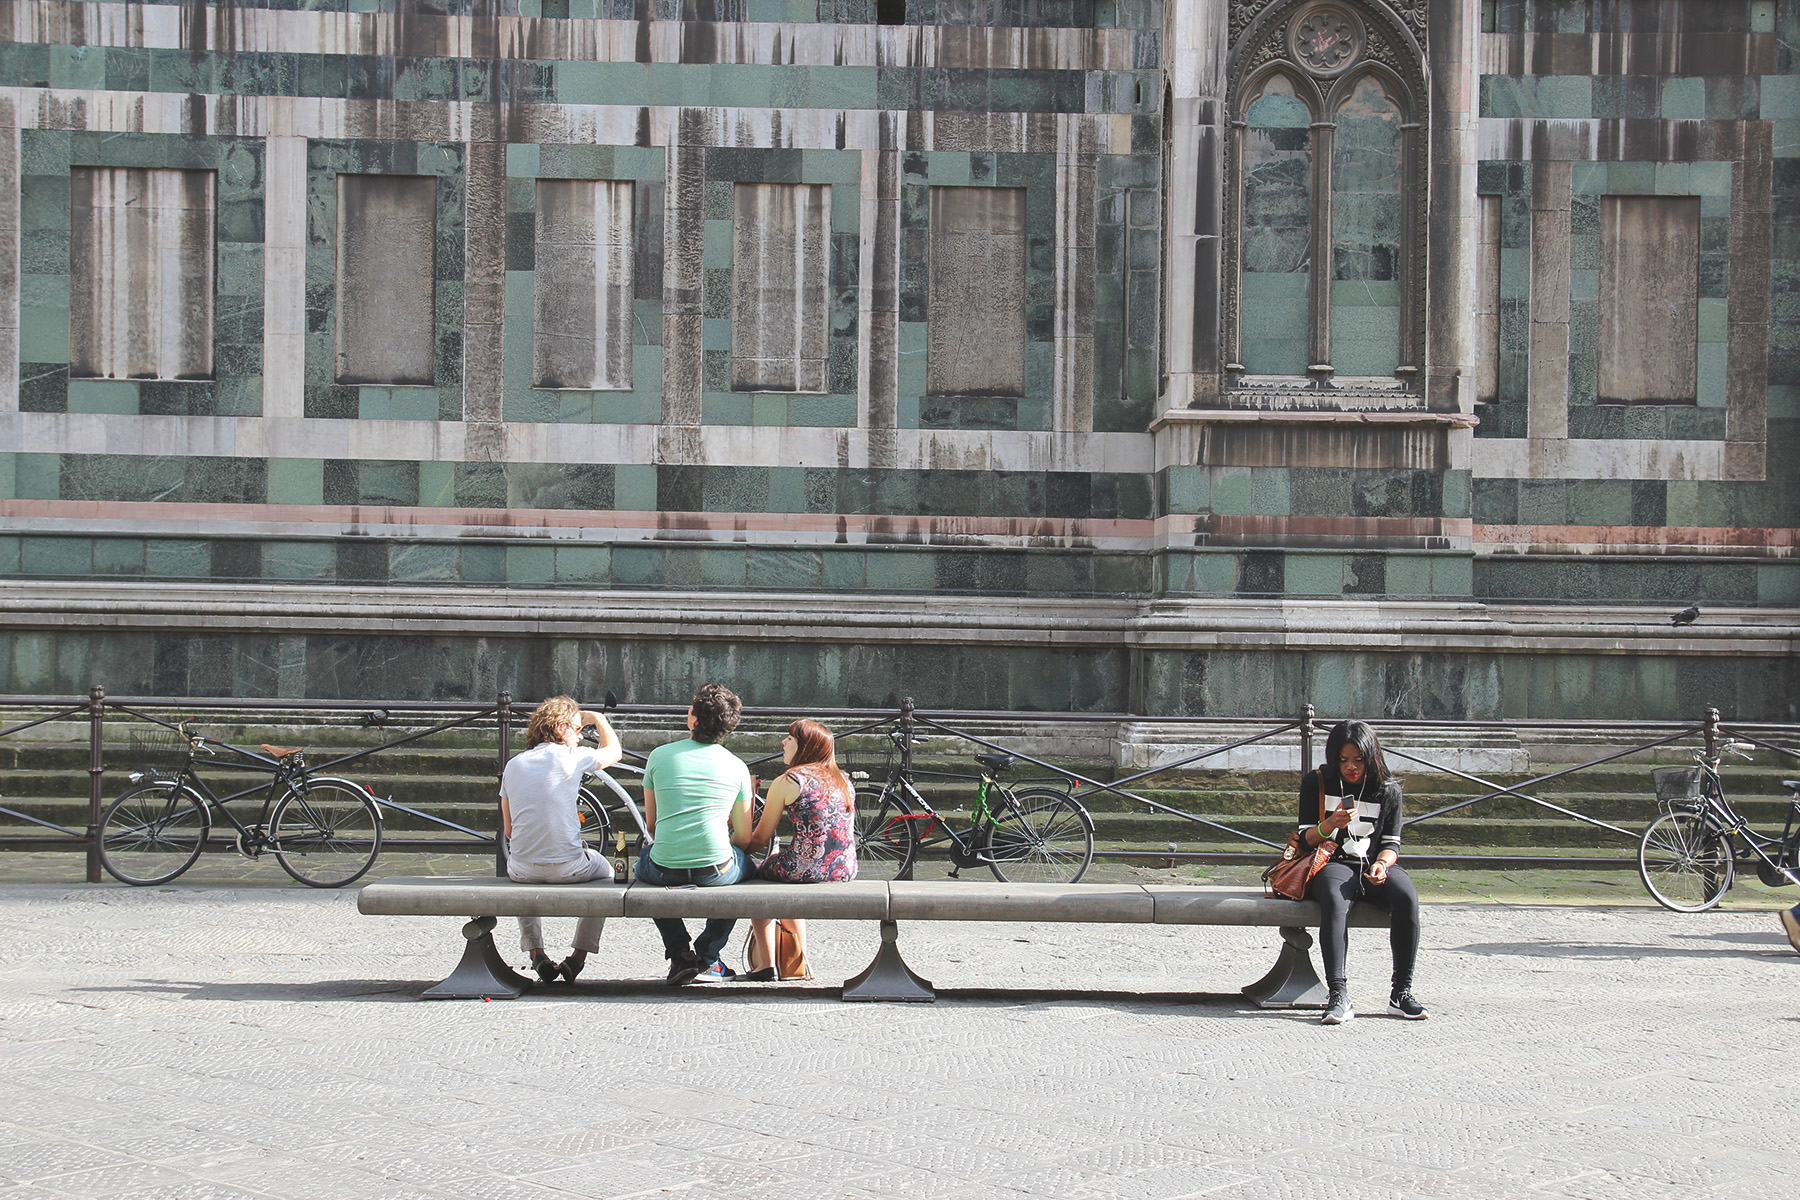 IL Duomo di Firenze  Sitting and trying to comprehend the Cathedral of Santa Maria del Fiore